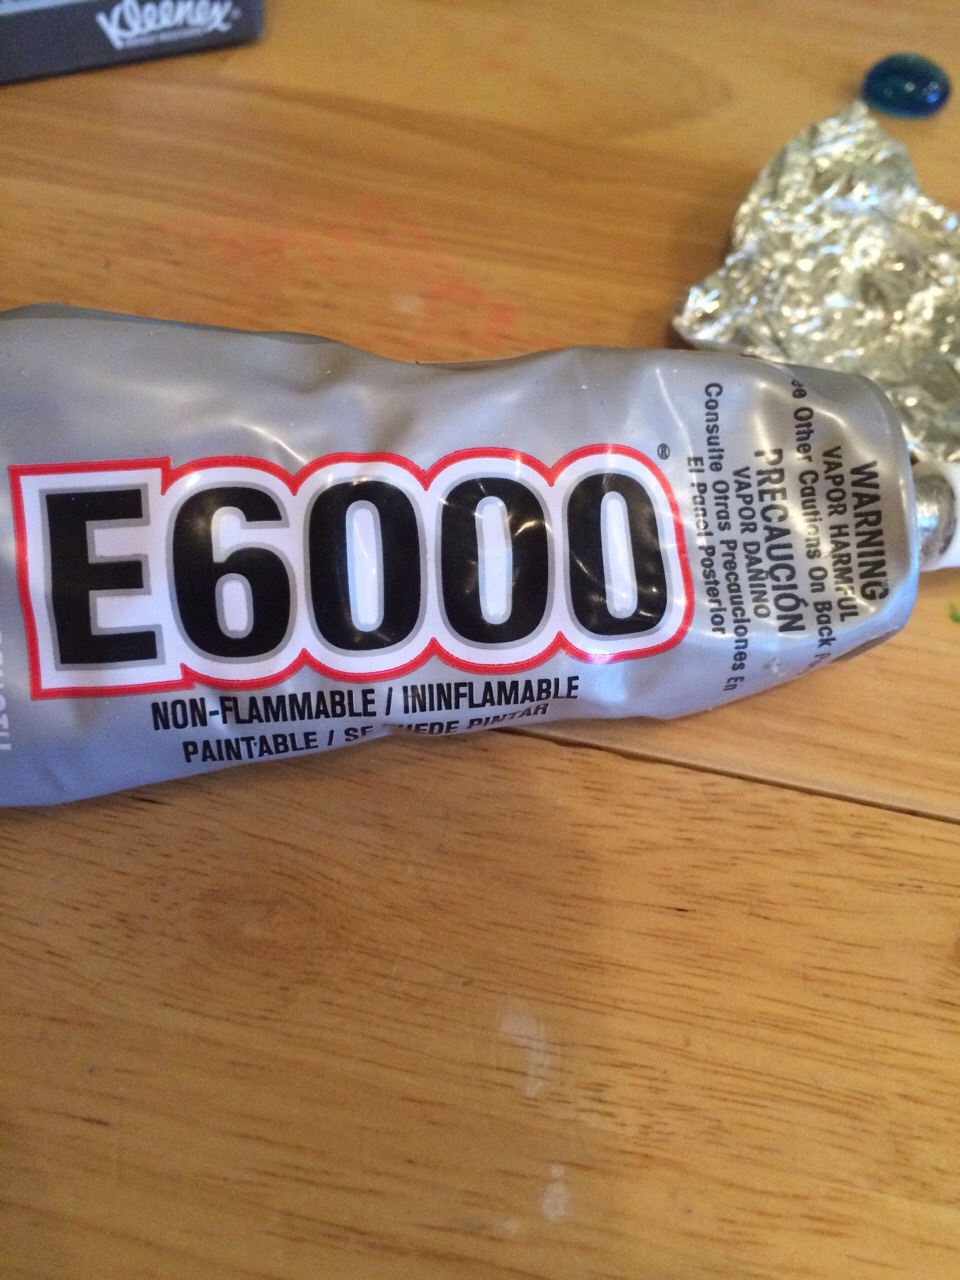 Go and find some E6000